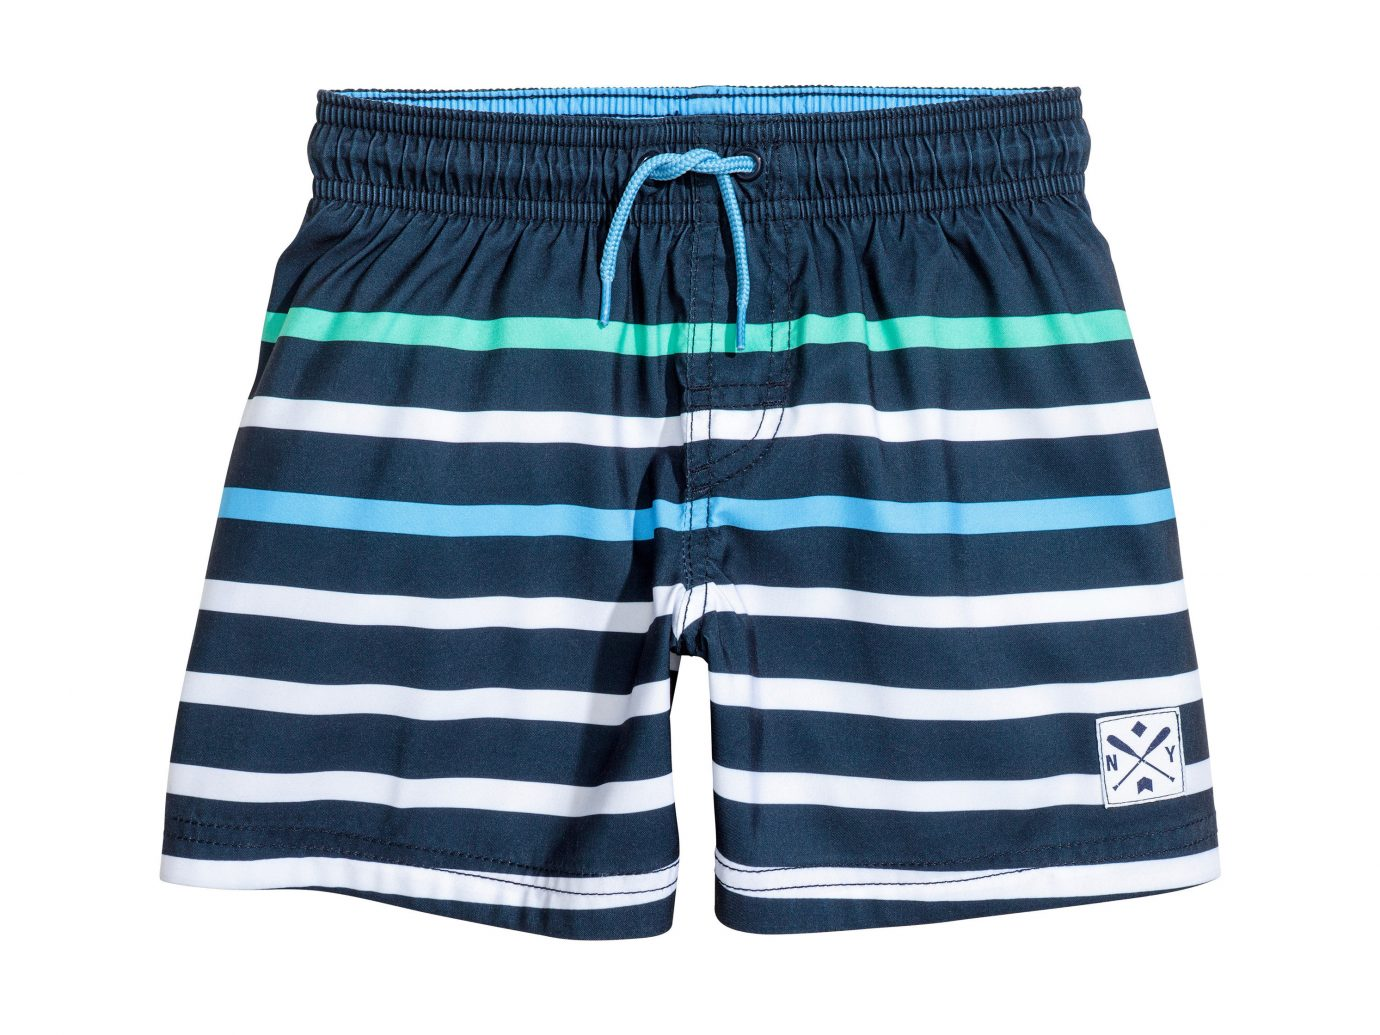 Style + Design clothing active shorts striped shorts trunks product electric blue bermuda shorts trouser underpants